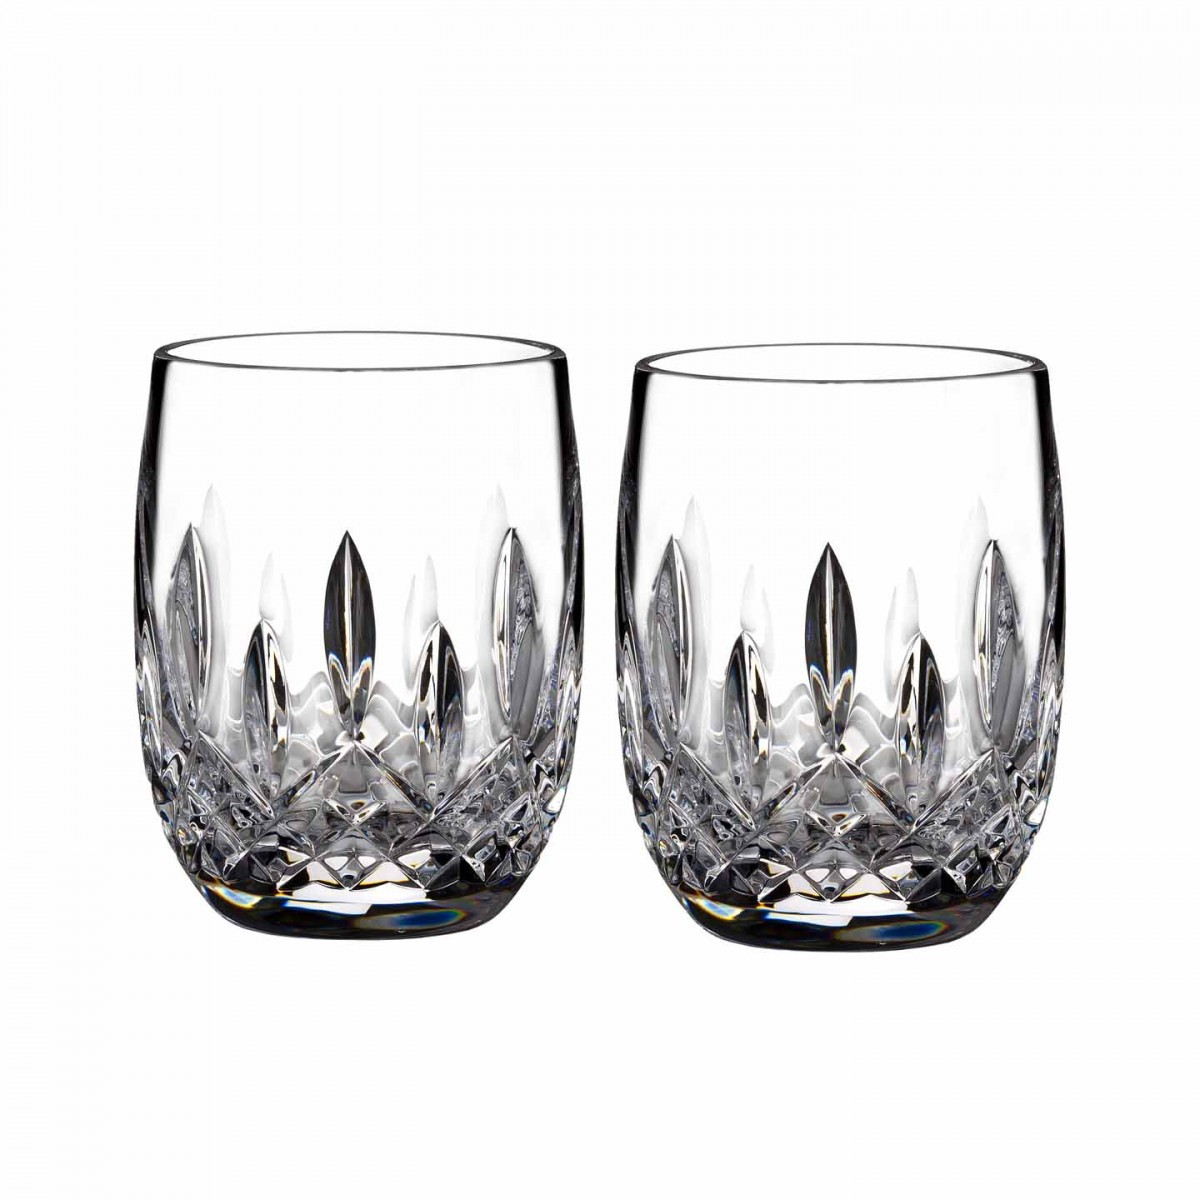 waterford lismore flared vase of lismore connoisseur rounded tumbler set of 2 waterforda crystal inside lismore connoisseur rounded tumbler set of 2